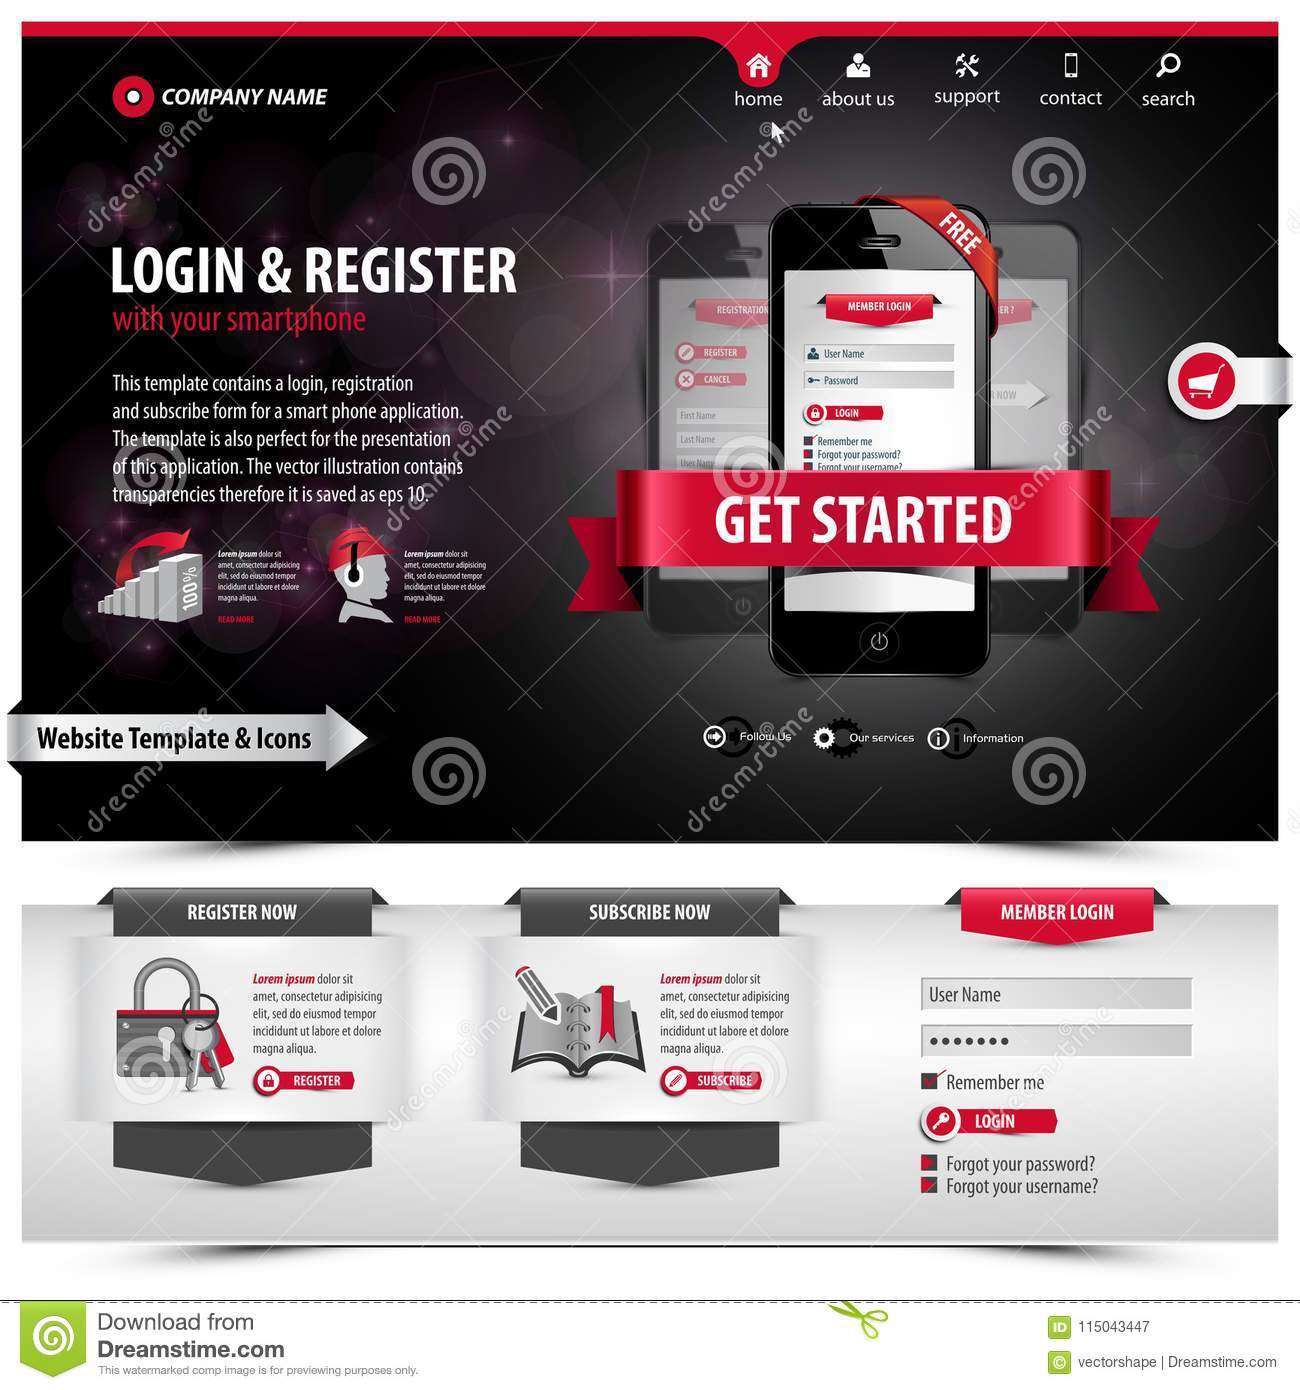 Website template design stock illustration. Illustration of graphic ...